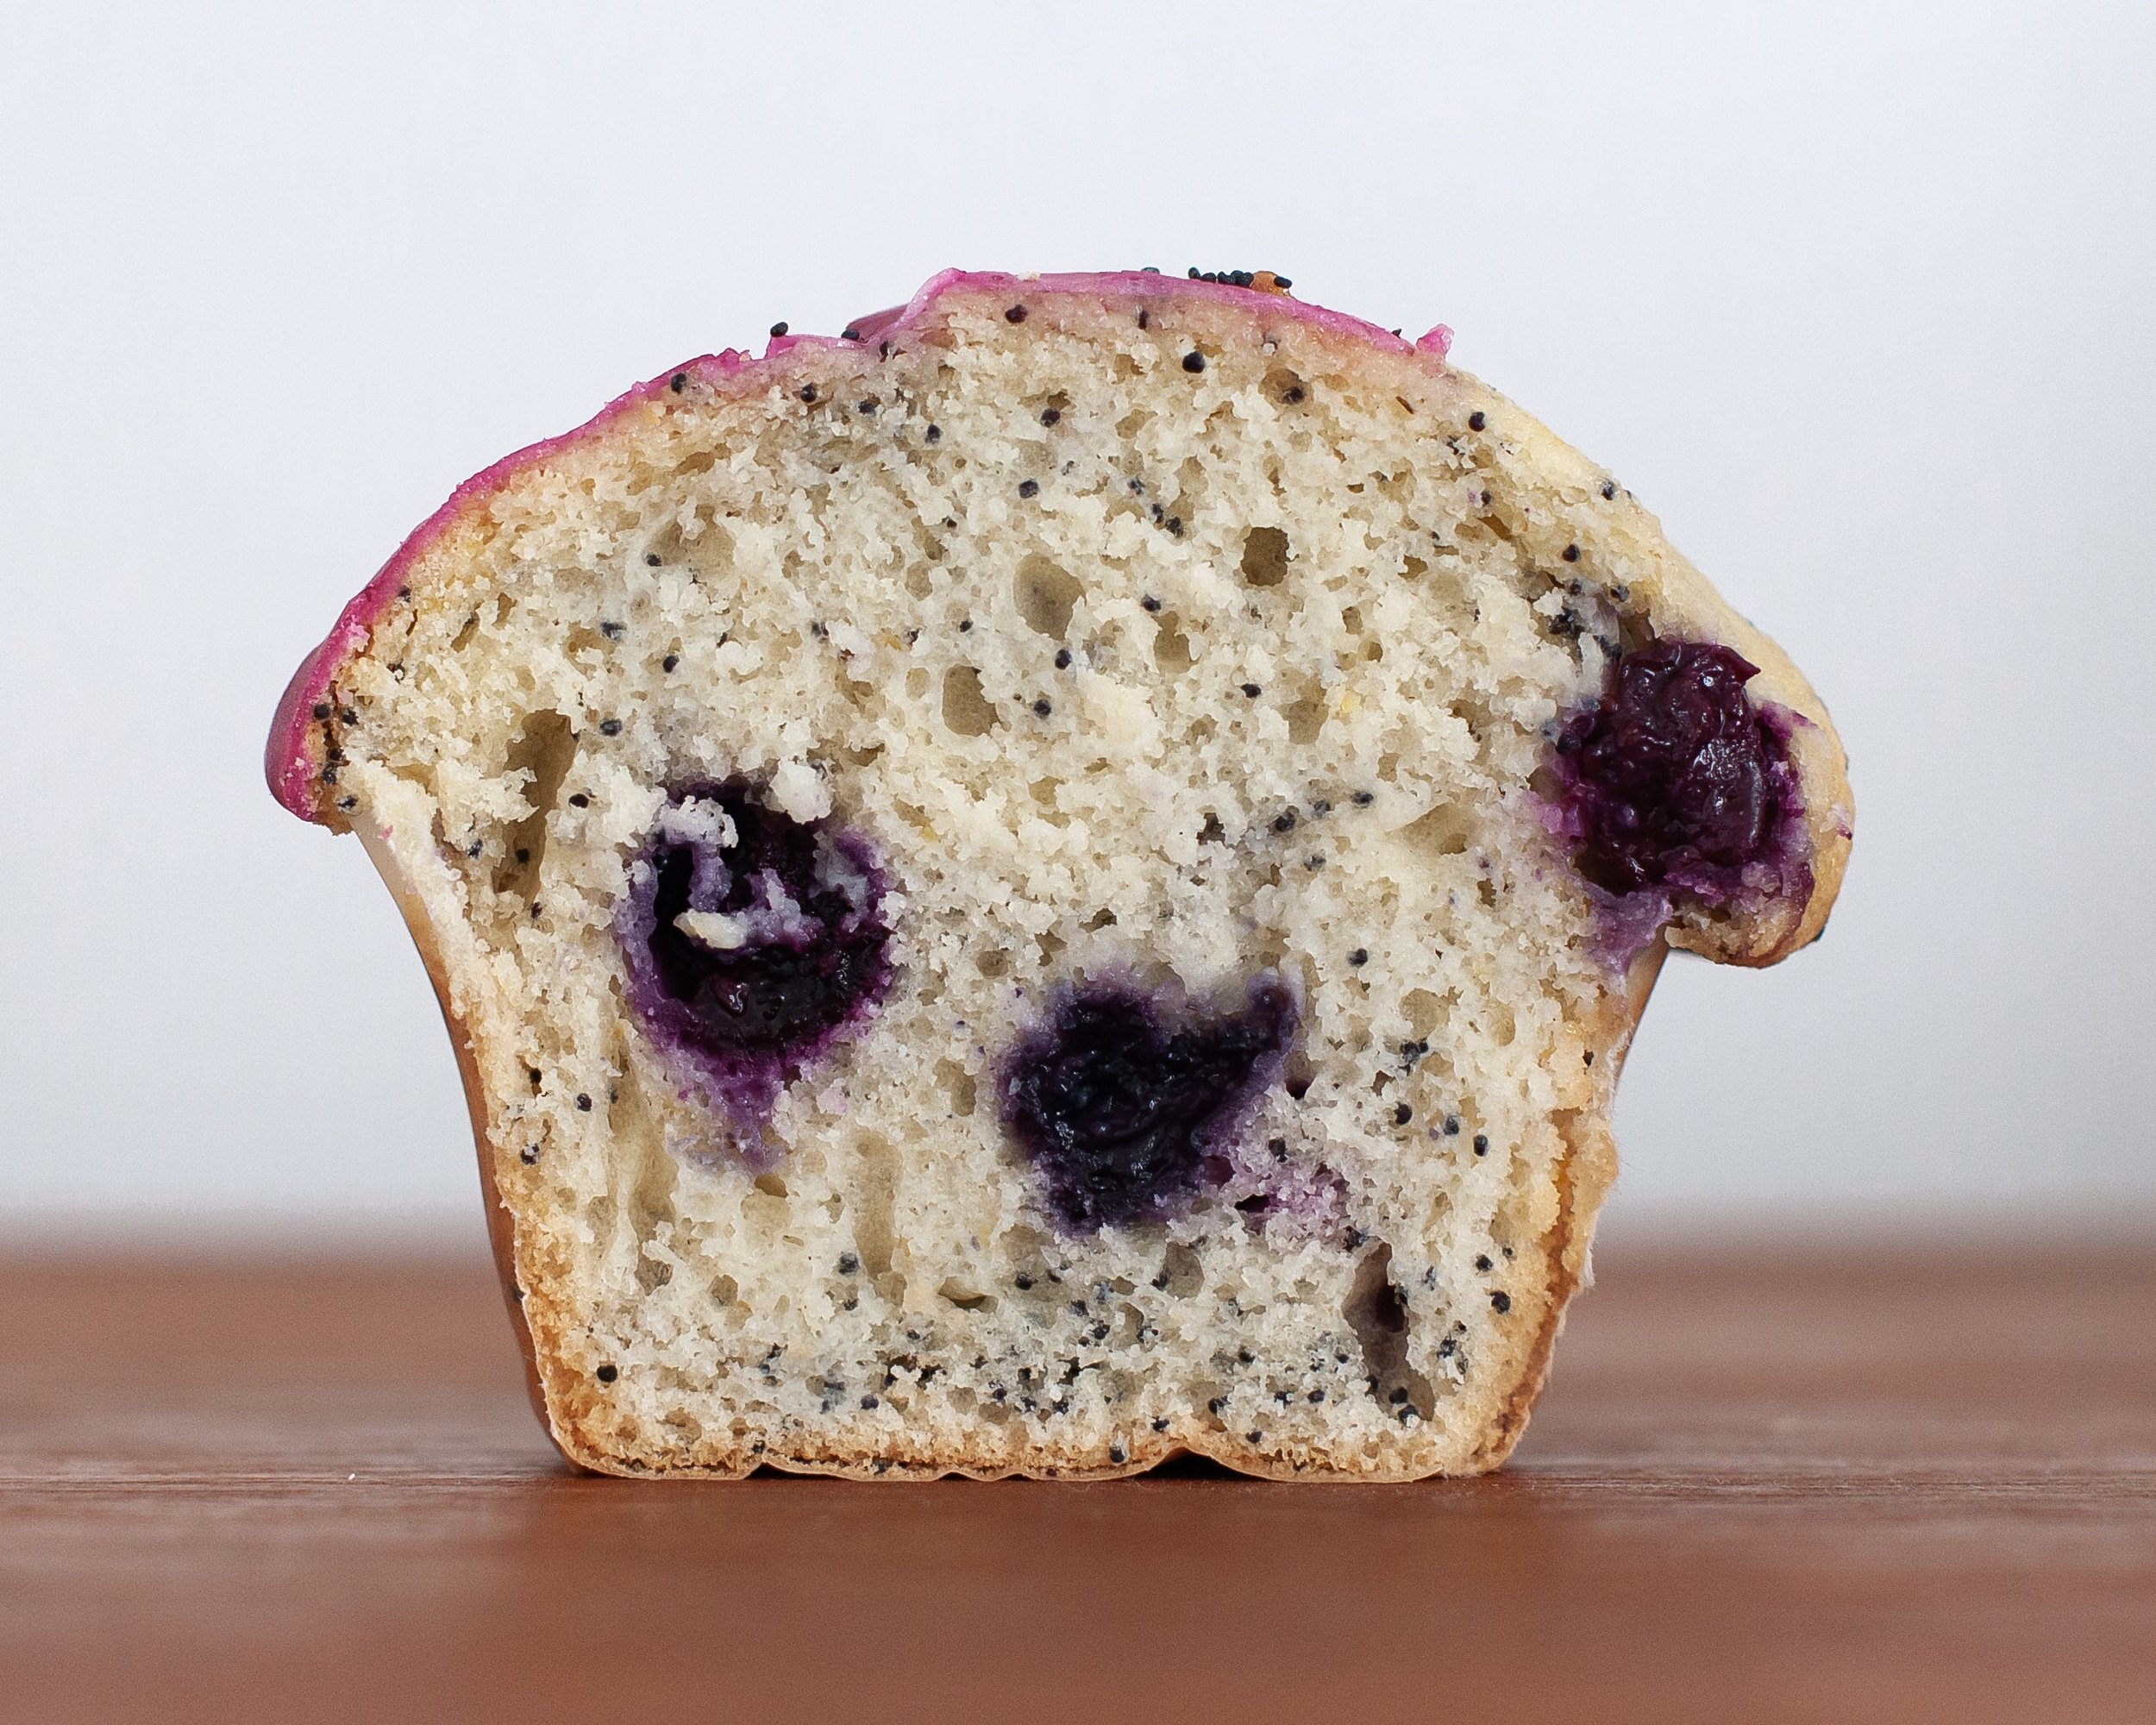 muffin cross section